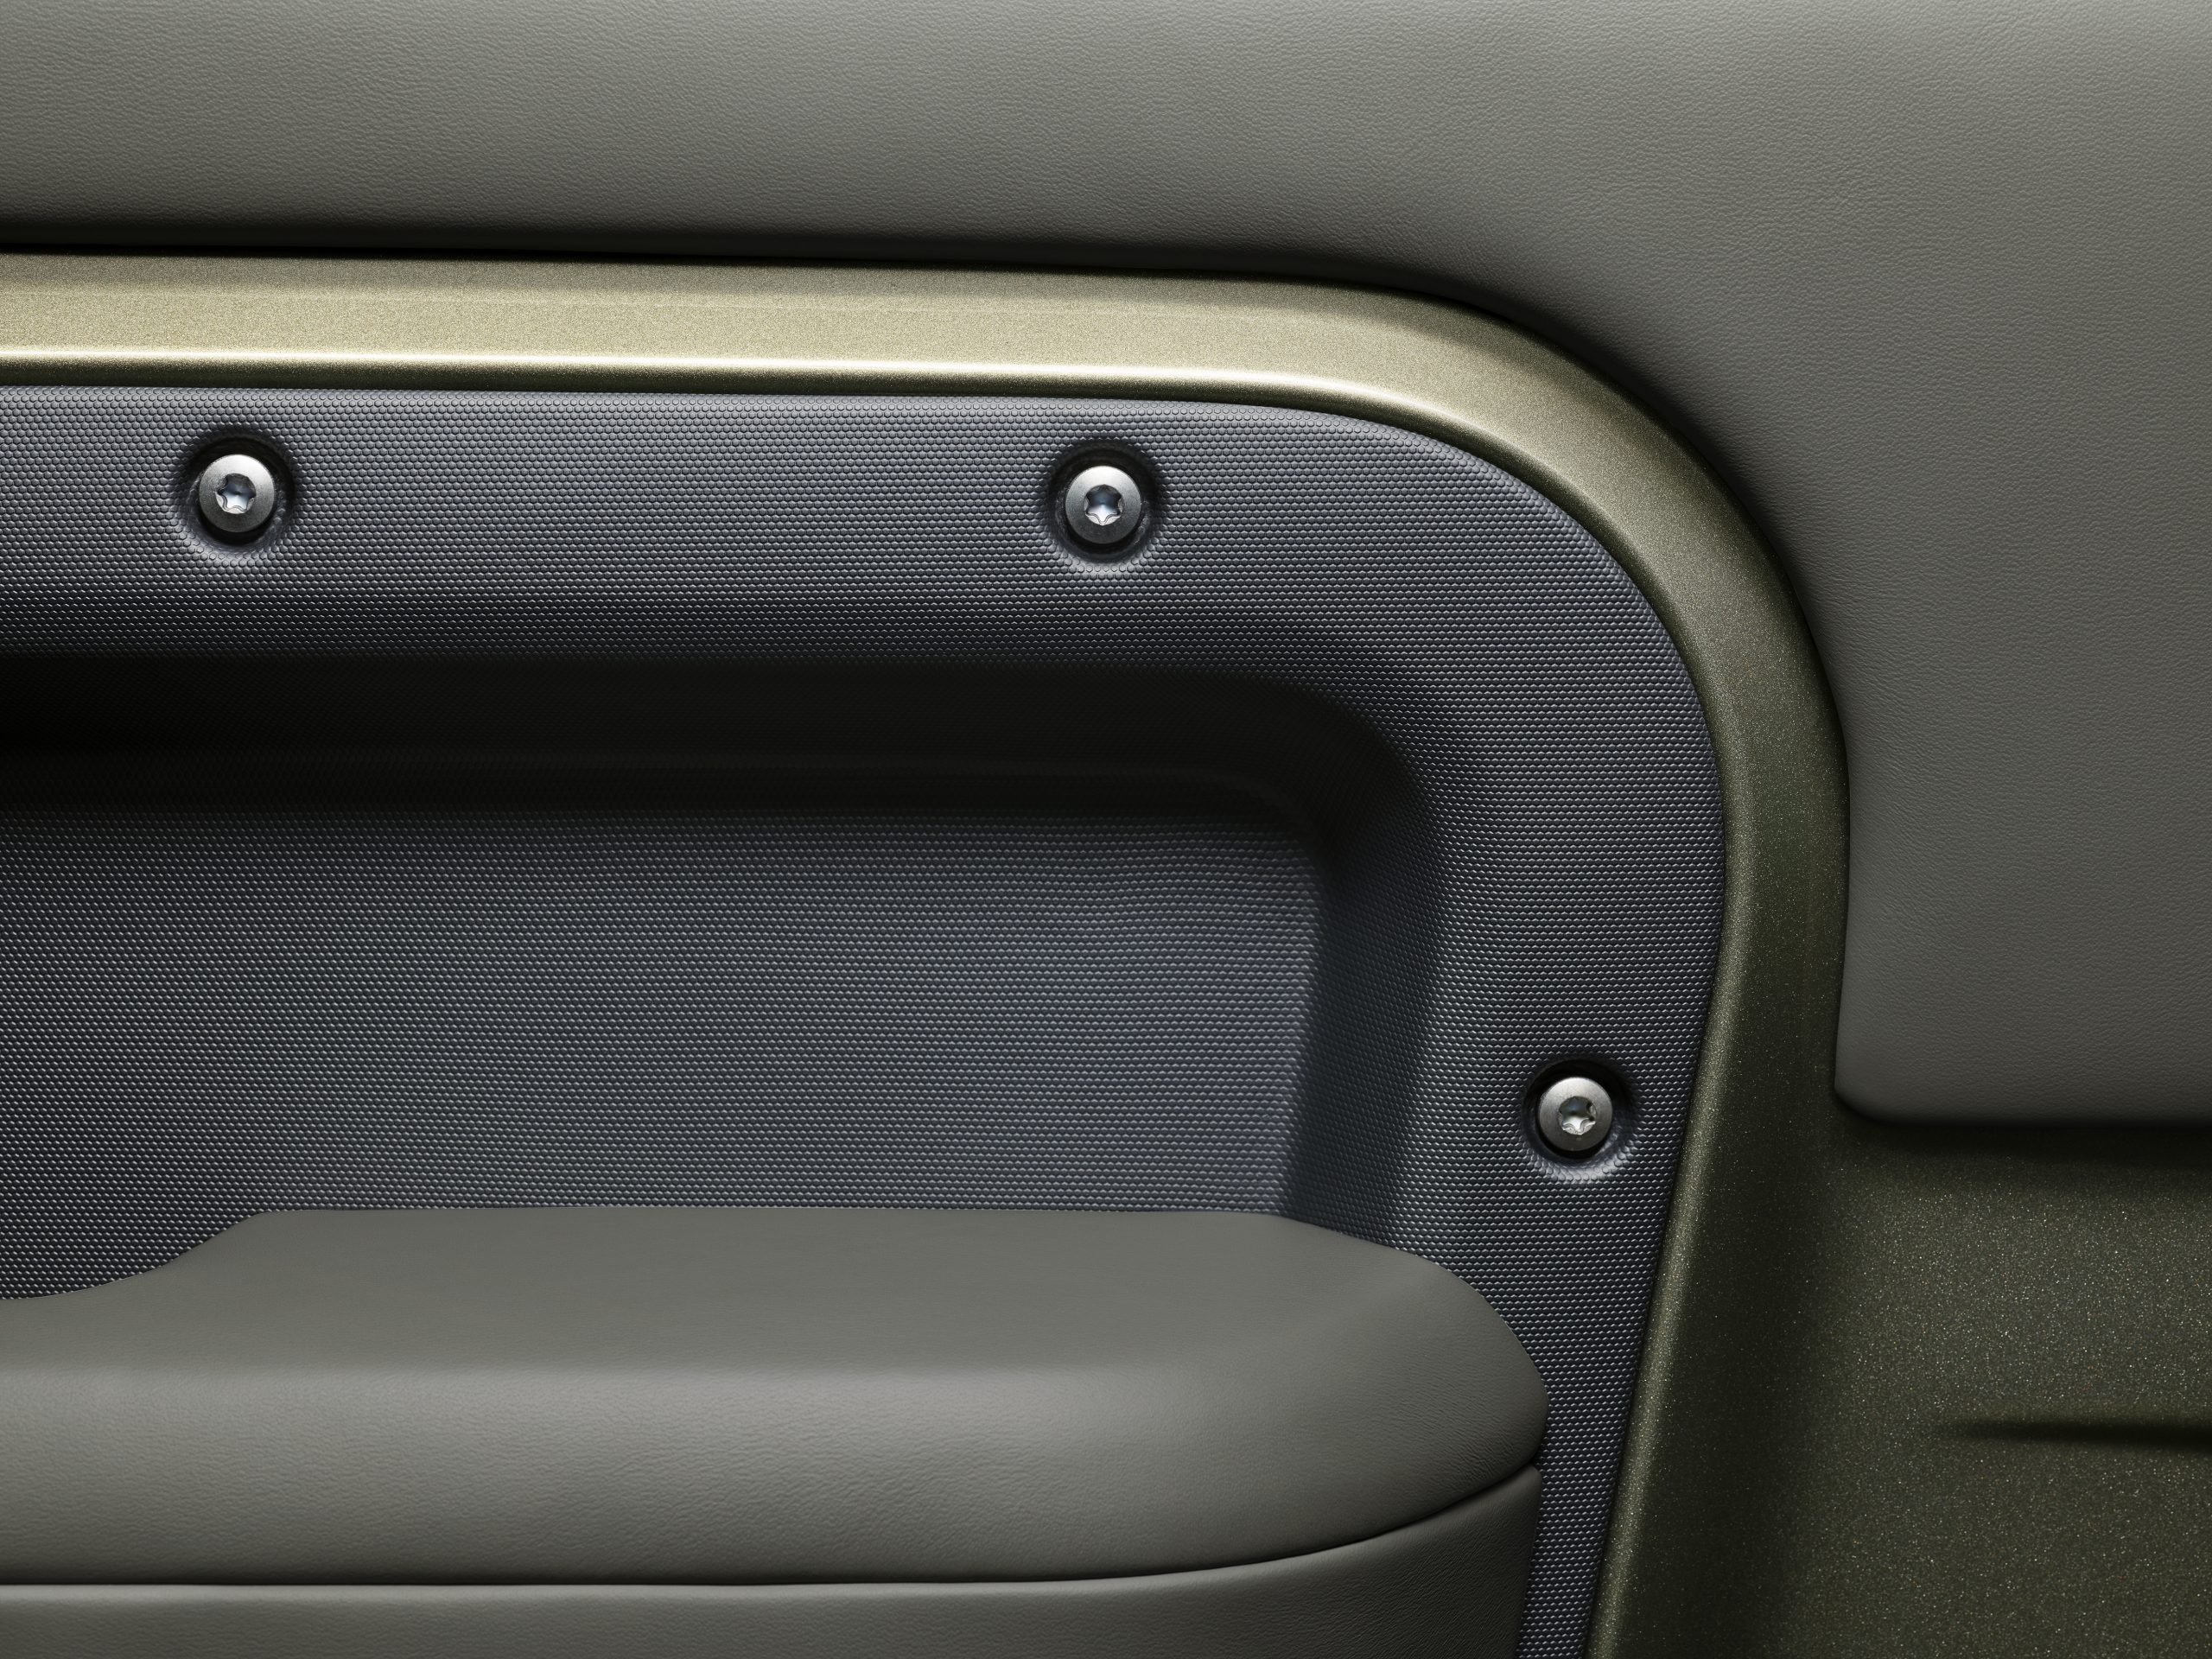 2020 Land Rover Defender interior detail exposed fasteners